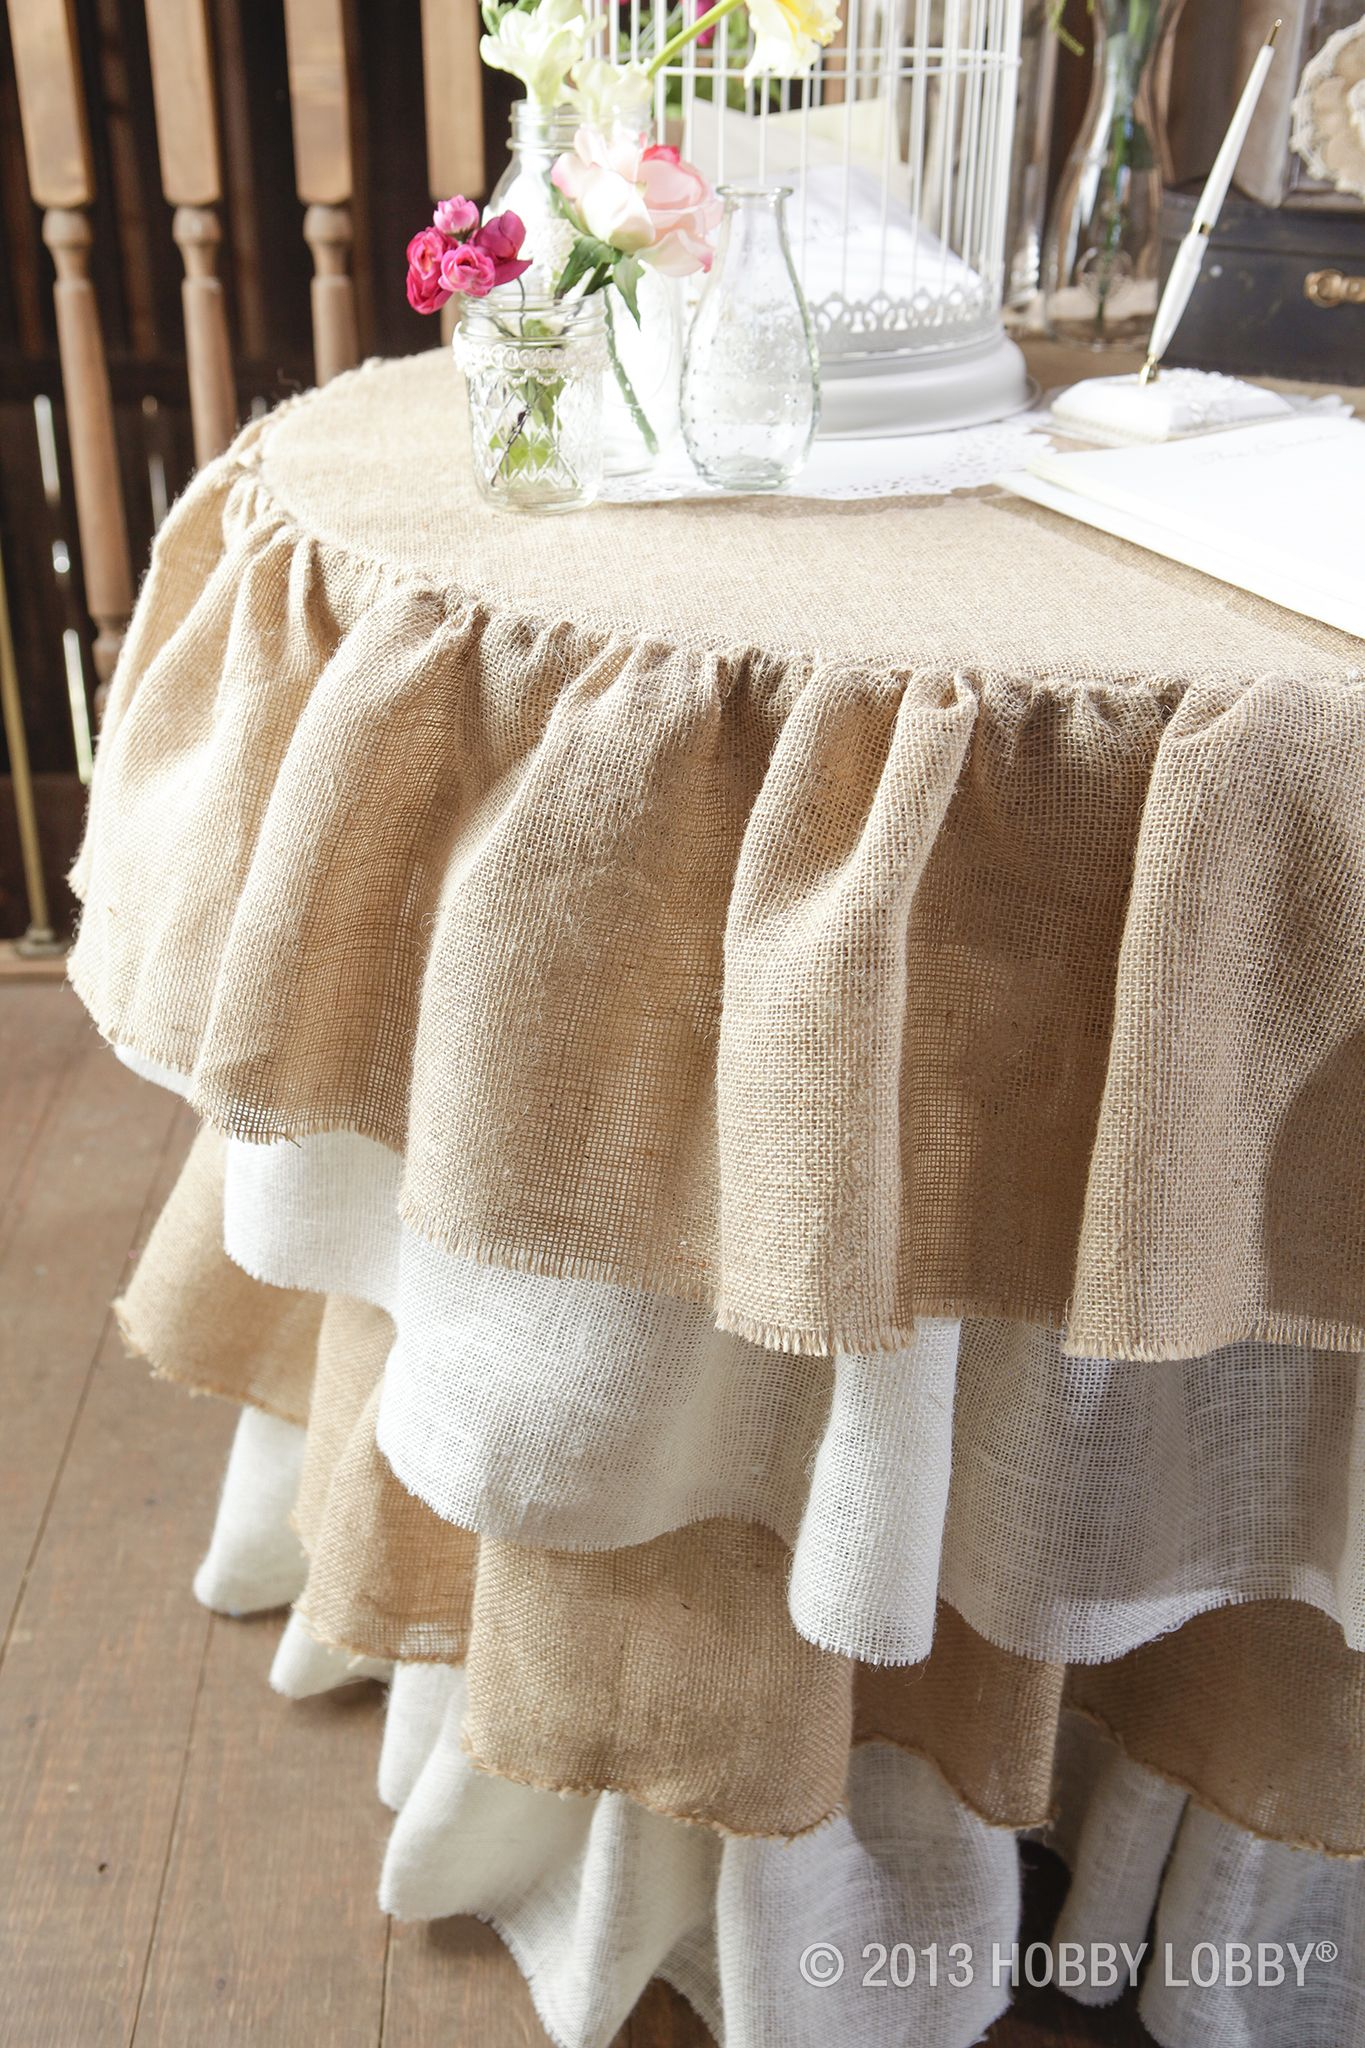 We Love This Ruffled Burlap Table Skirt, Rustic, Elegant And Girly All At  The